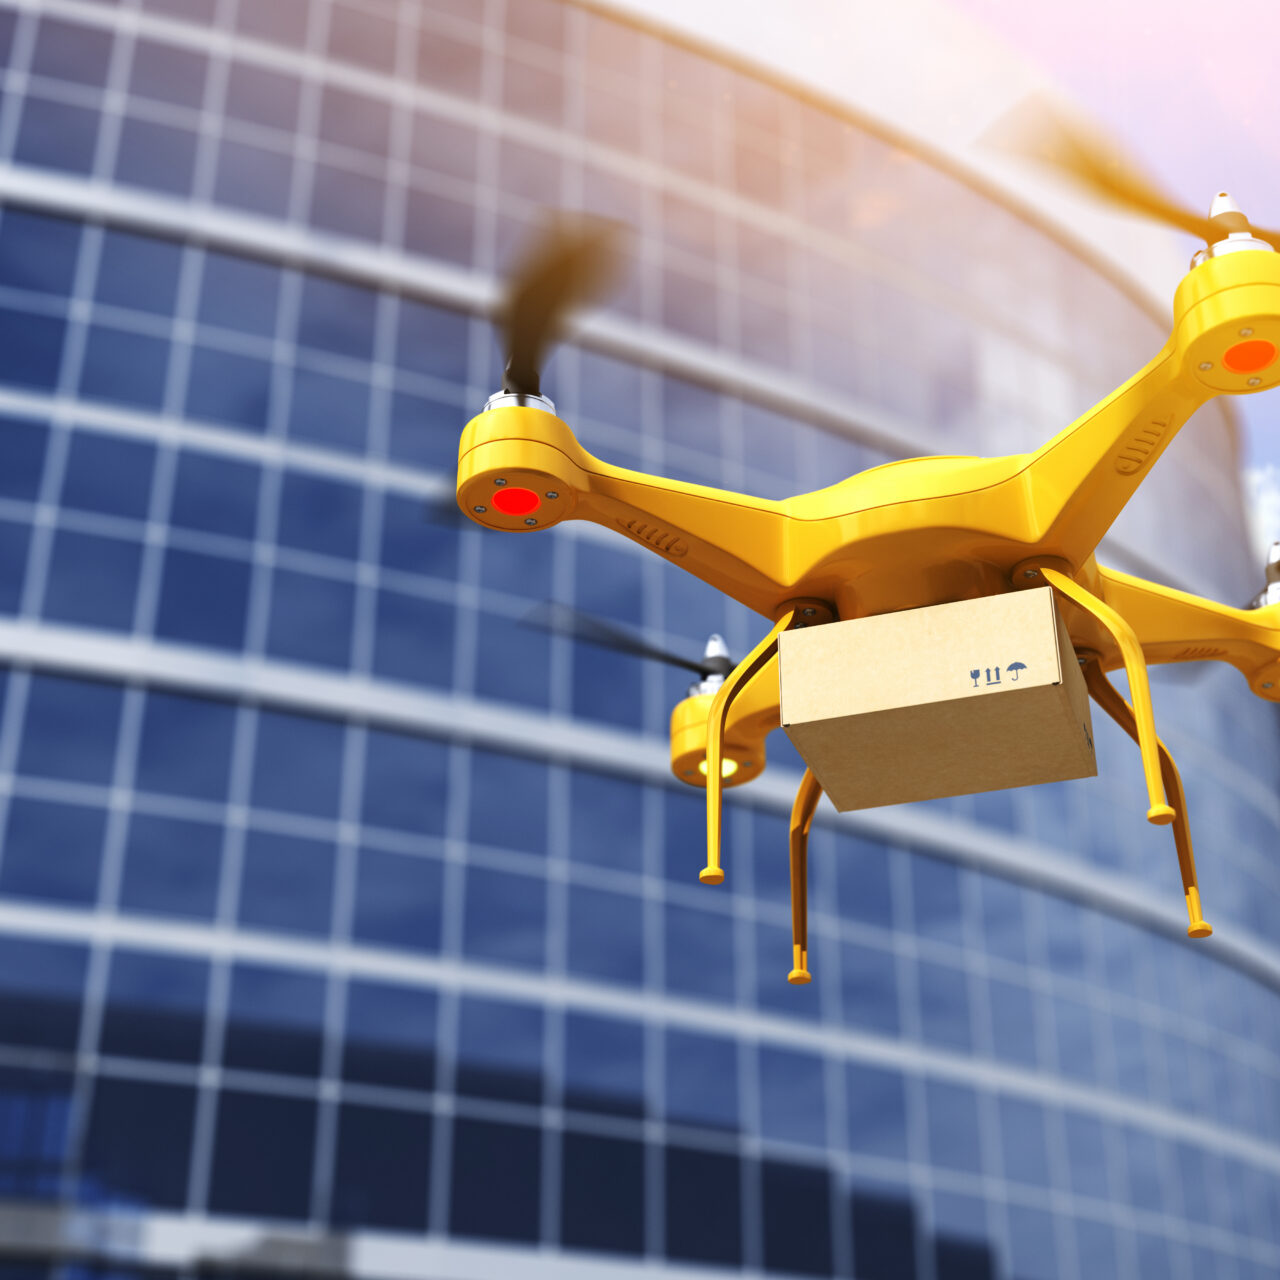 Quadrocopter carrying a parcell. 3D illustration